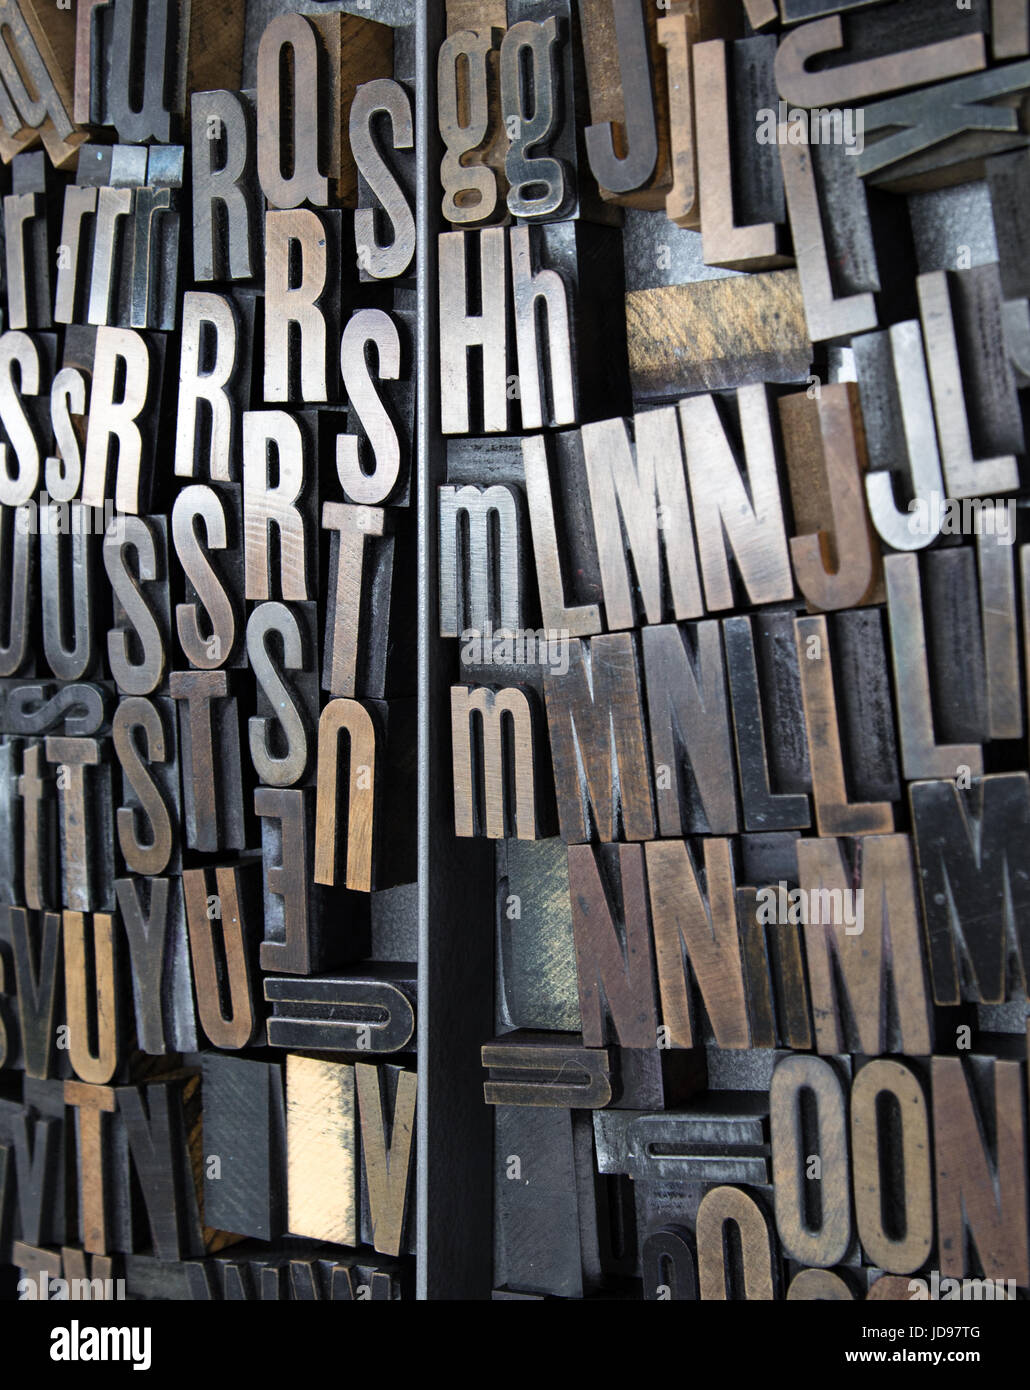 Letters for type setting - Stock Image